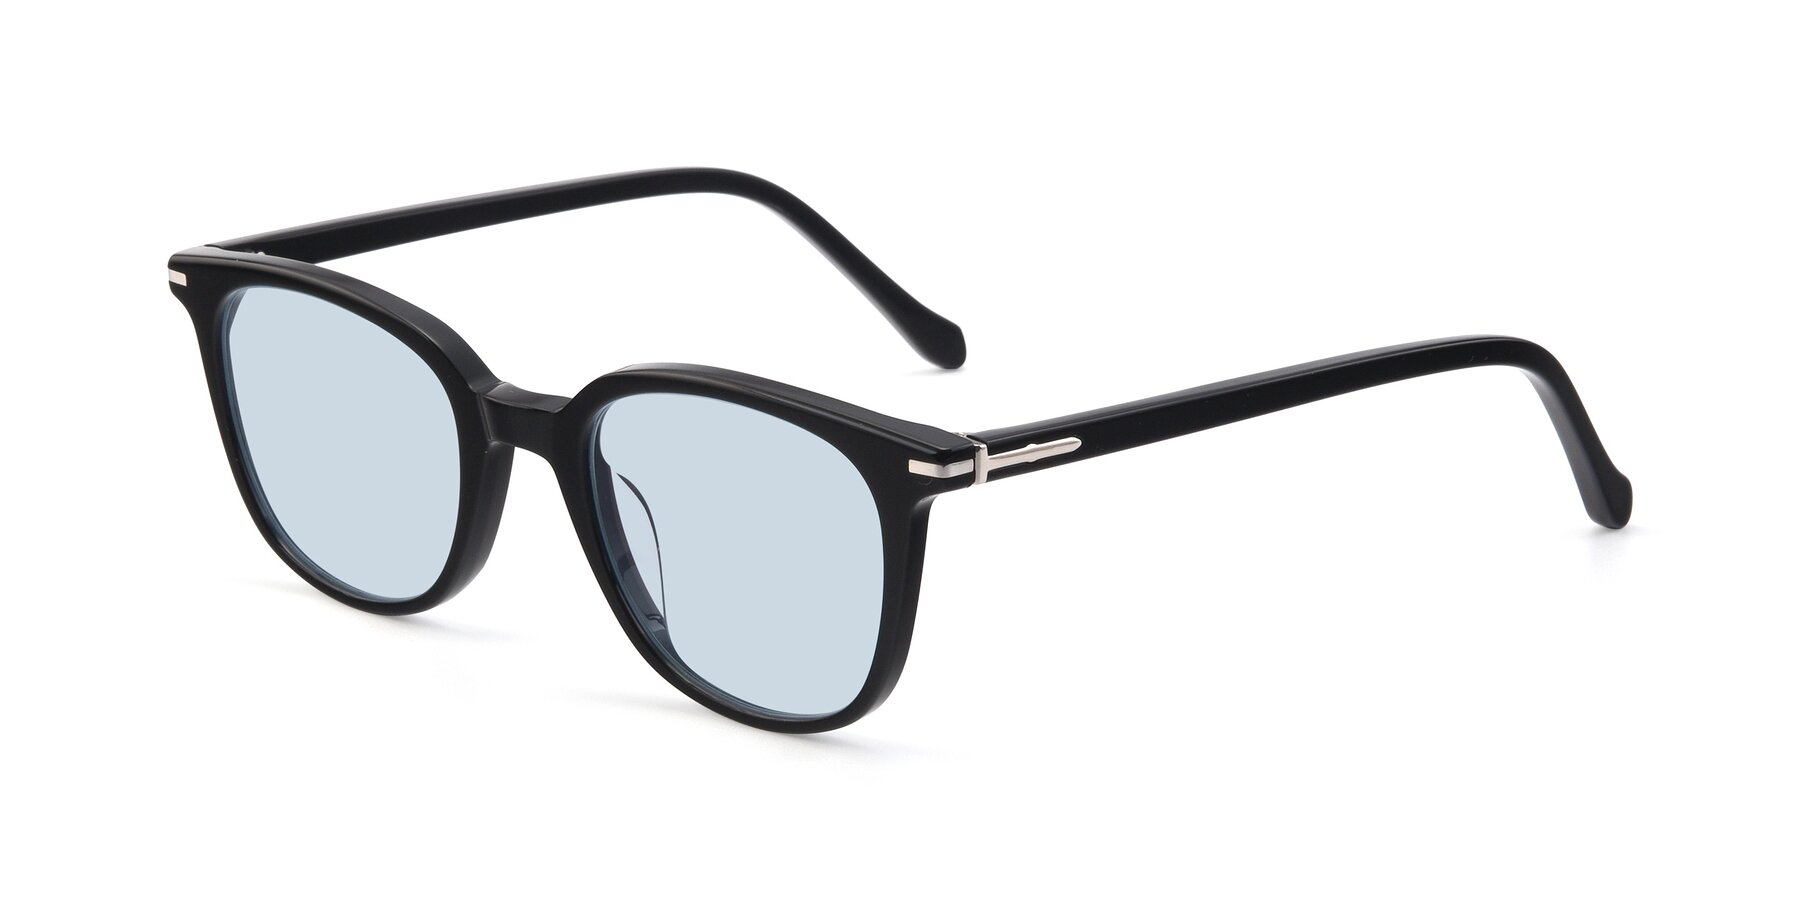 Angle of 17562 in Black with Light Blue Tinted Lenses